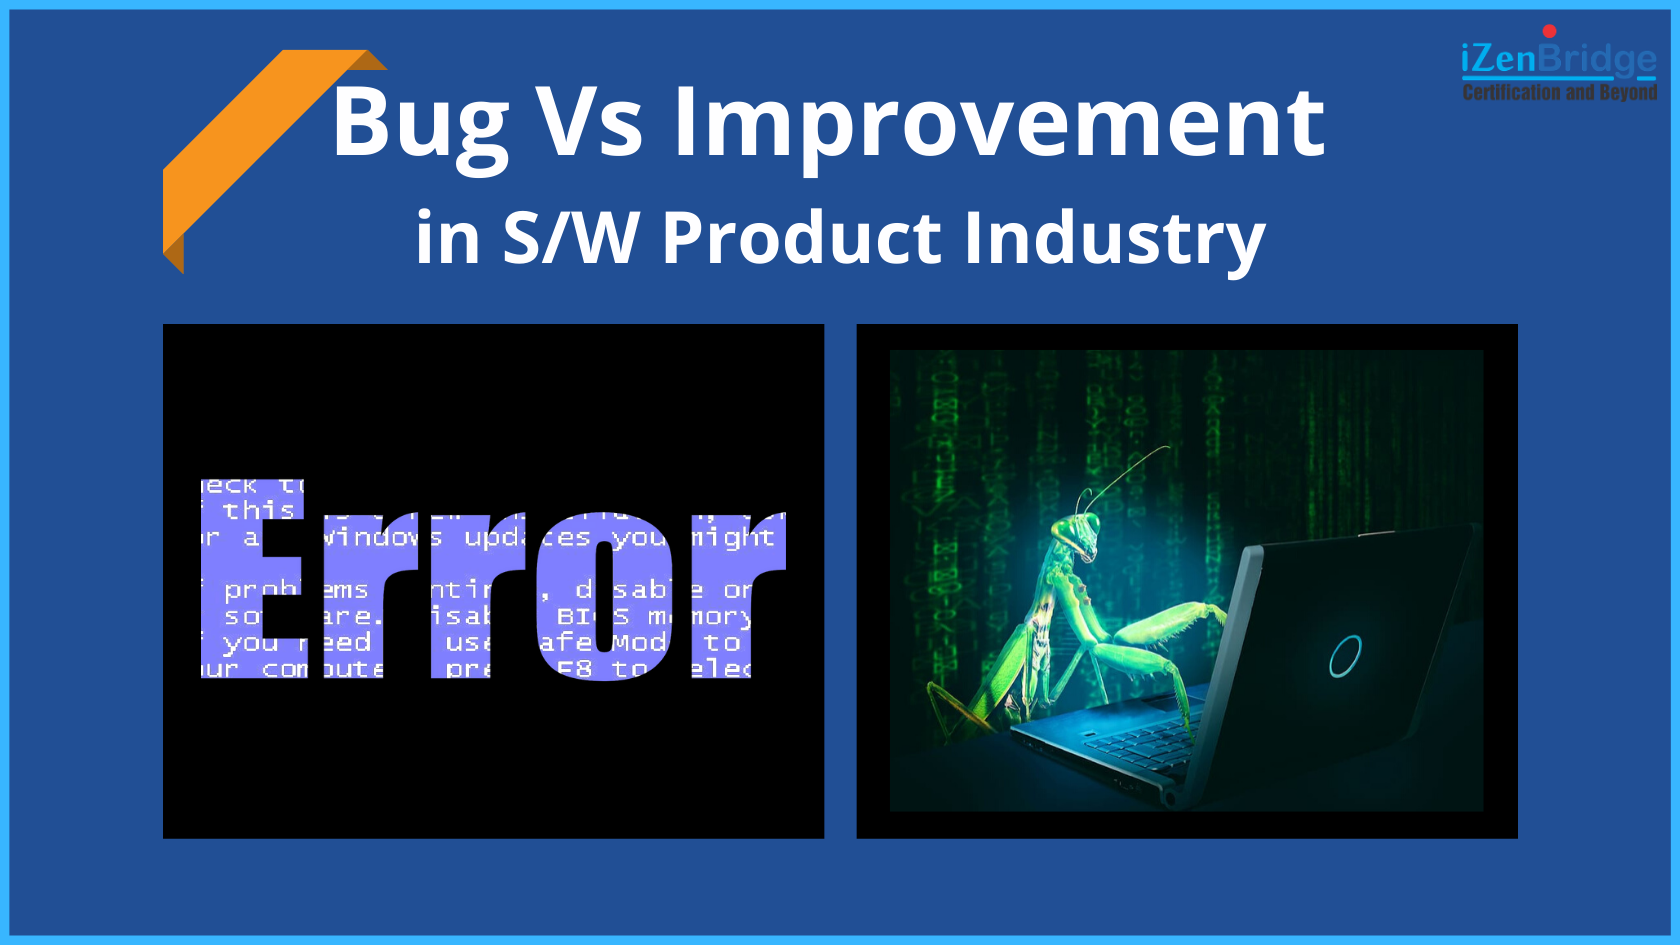 Bug Vs Improvement